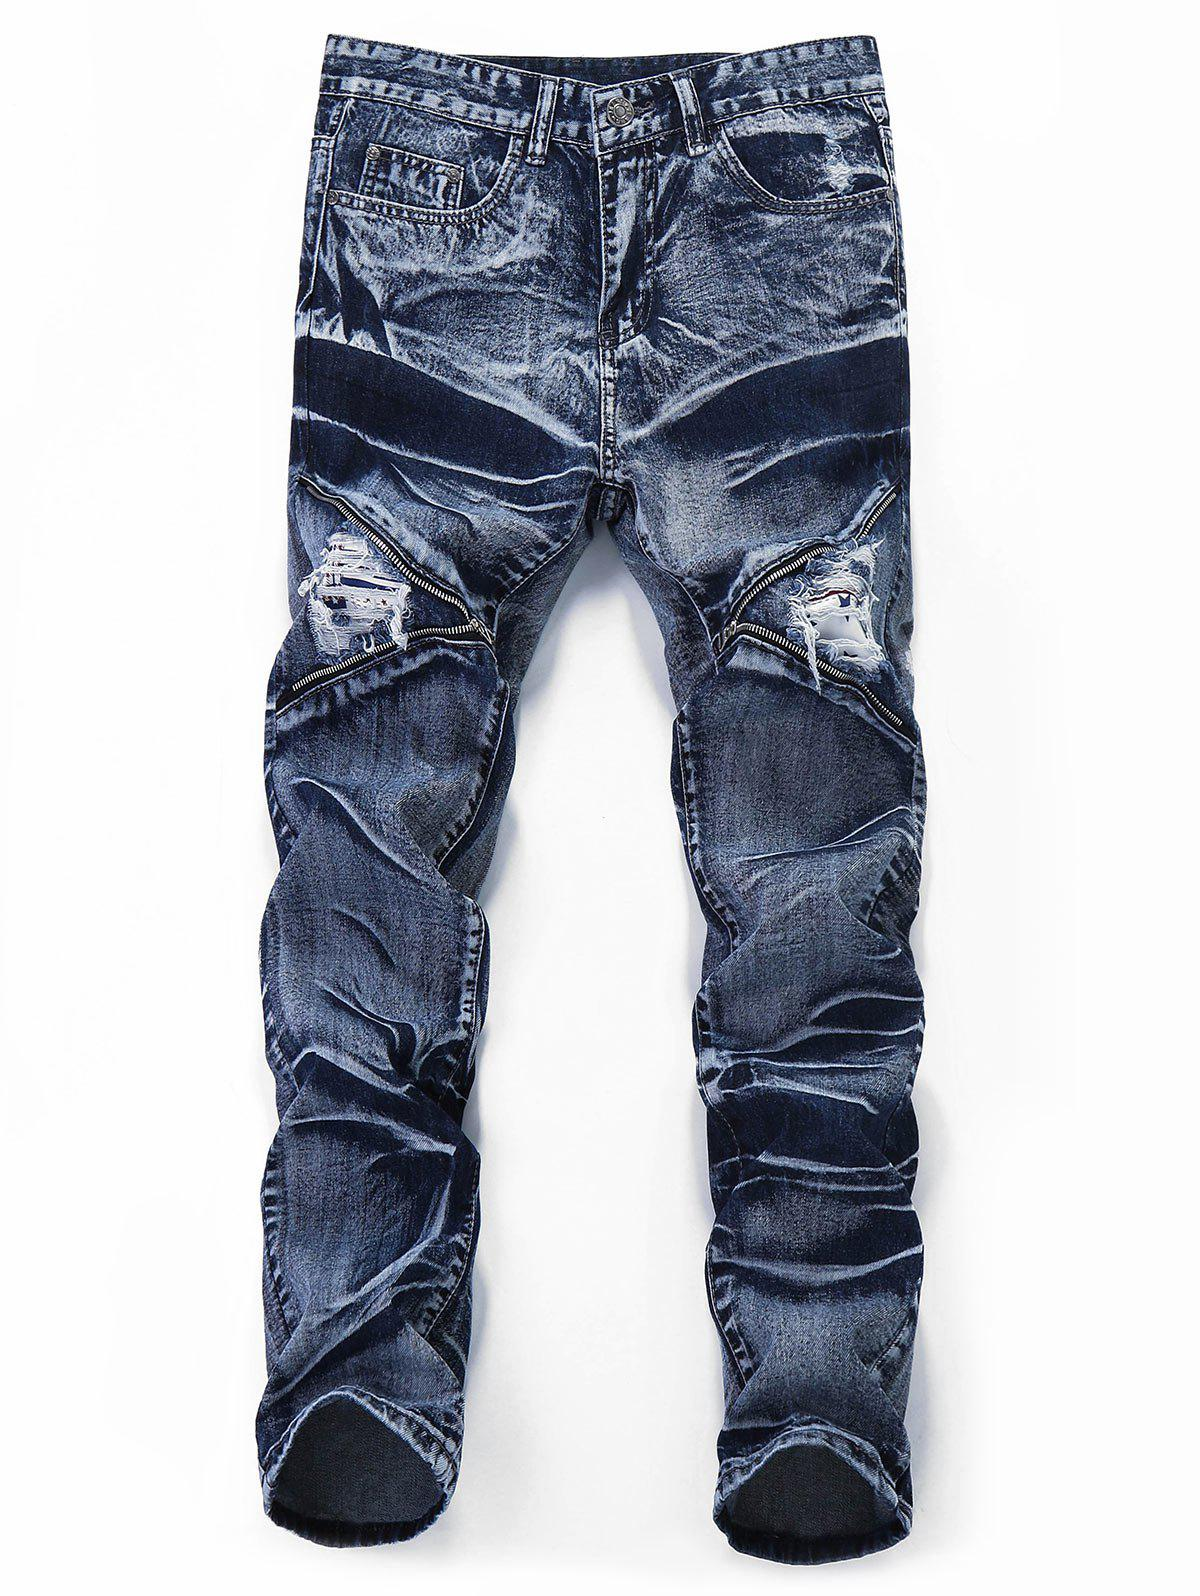 Destroyed Retro Zipper Leg Straight Jeans - JEANS BLUE 42